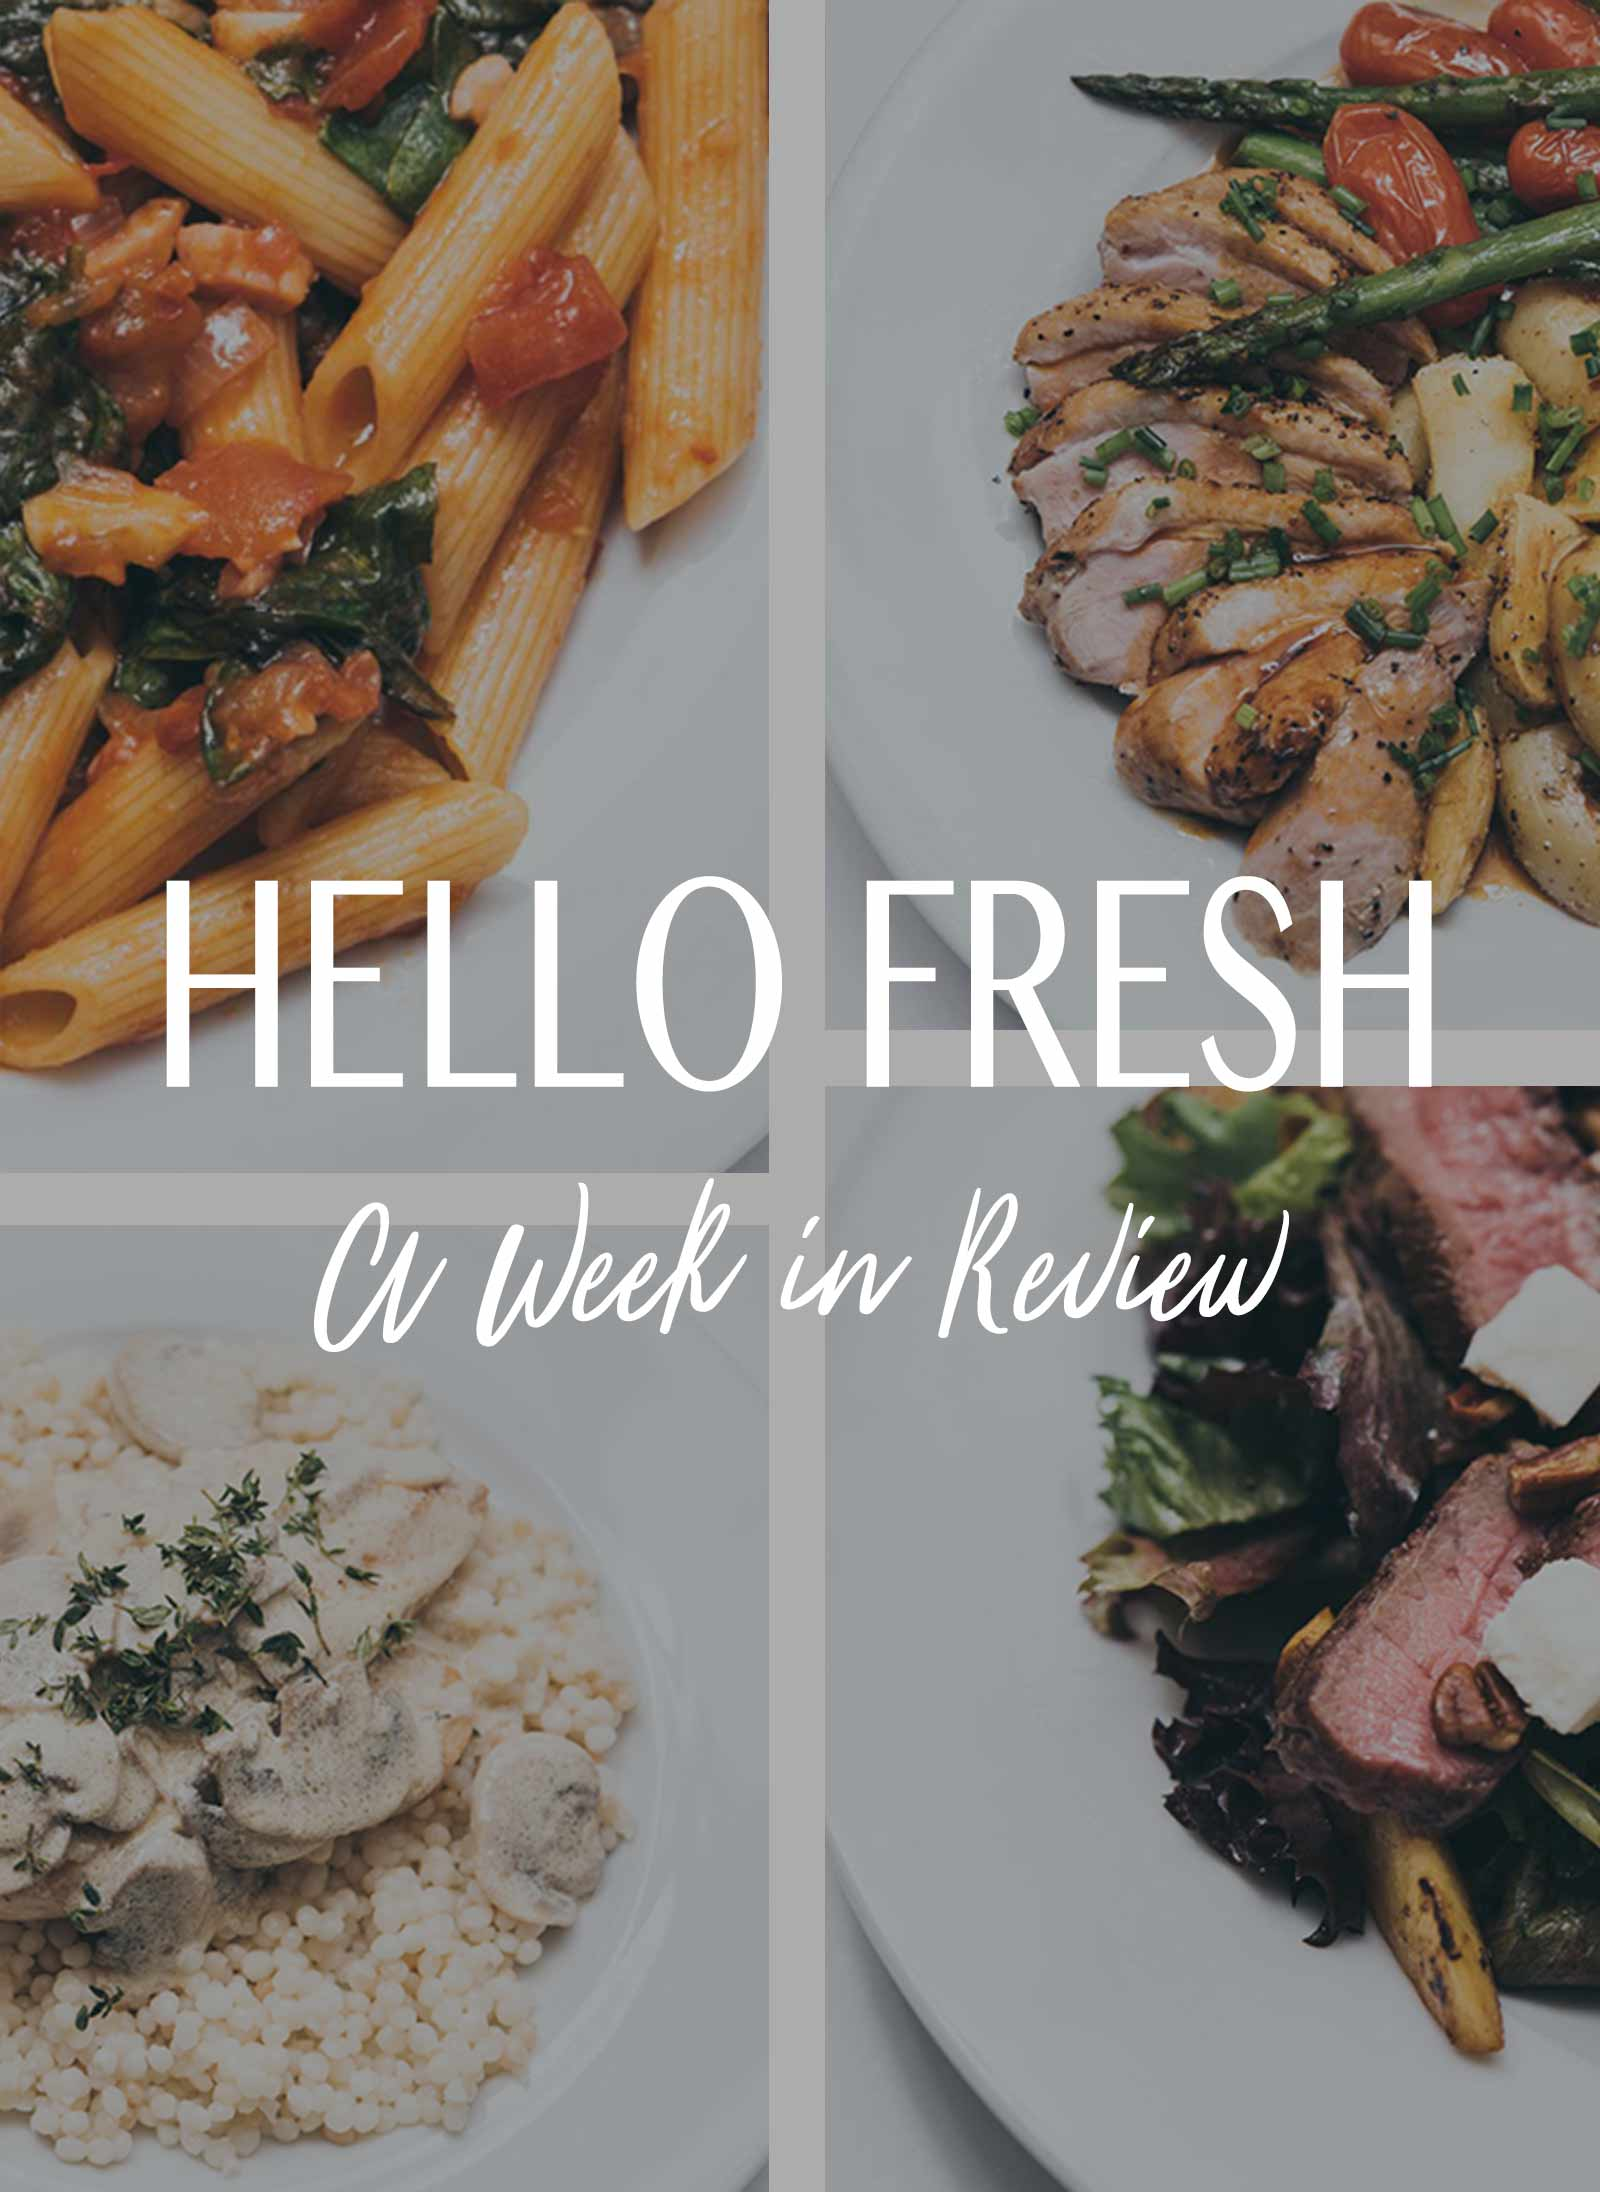 Cheap  Meal Kit Delivery Service Hellofresh Release Date Price